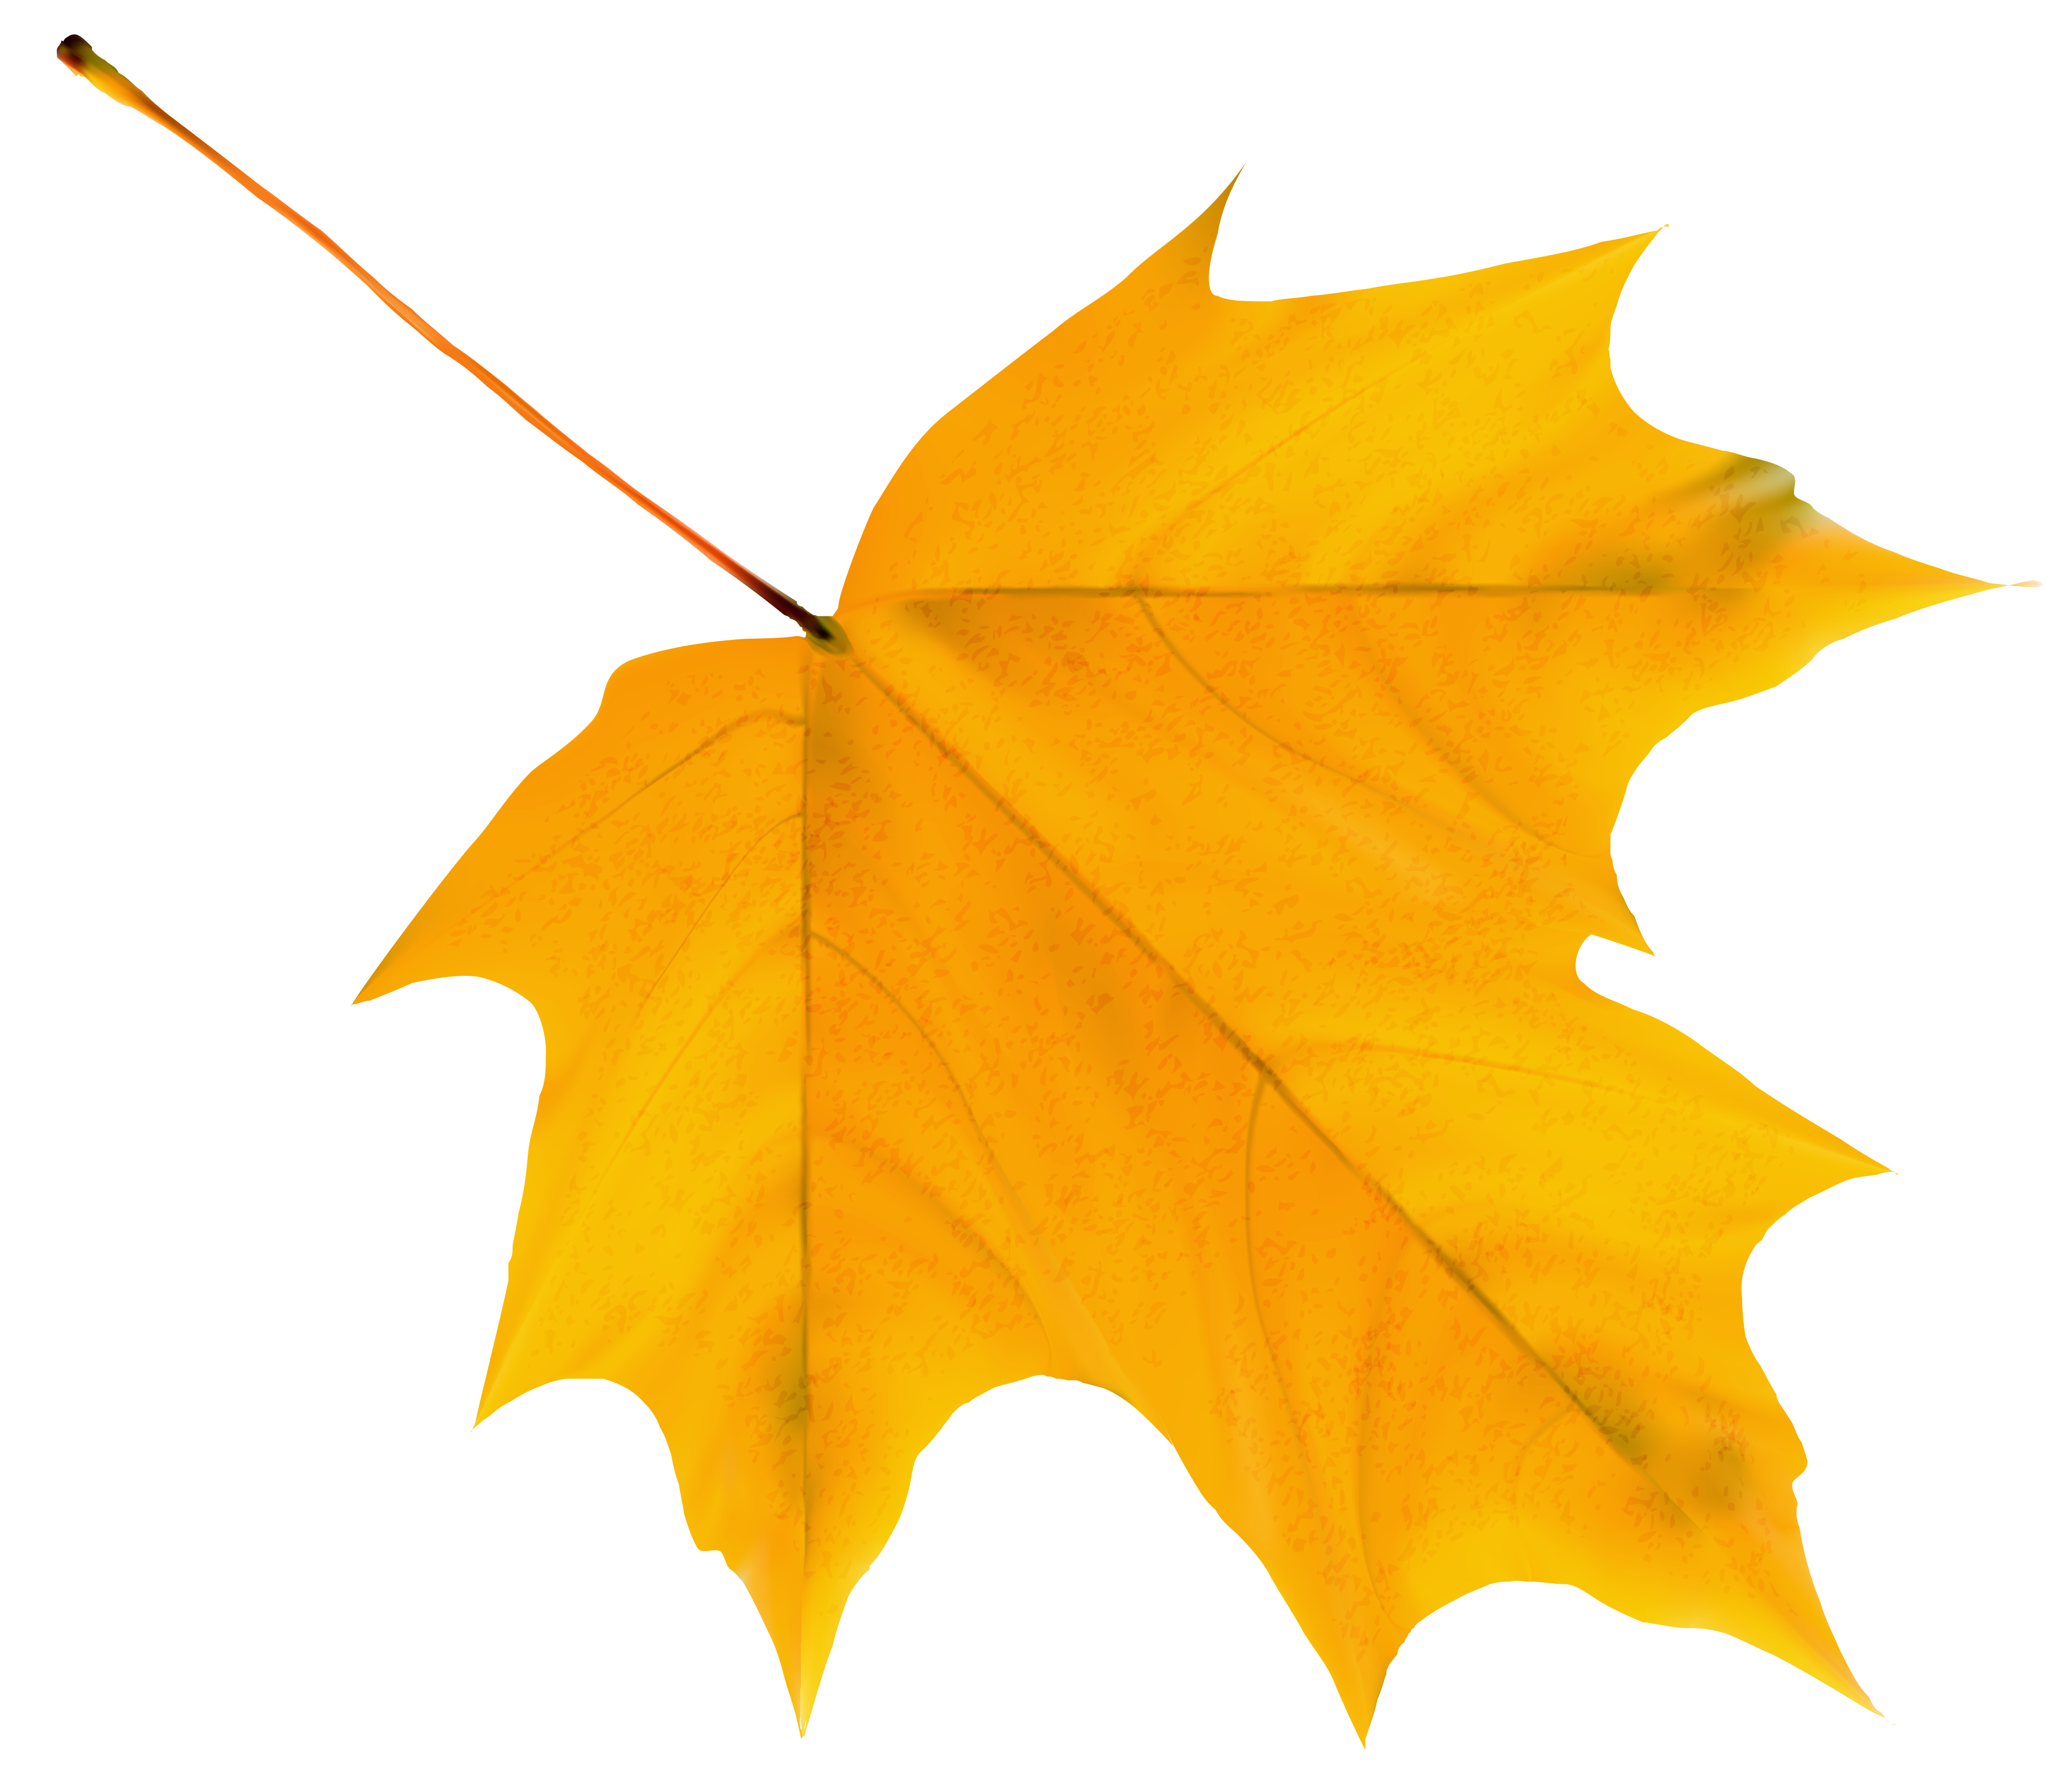 Yellow autumn leaf png. Clipart fall deciduous tree